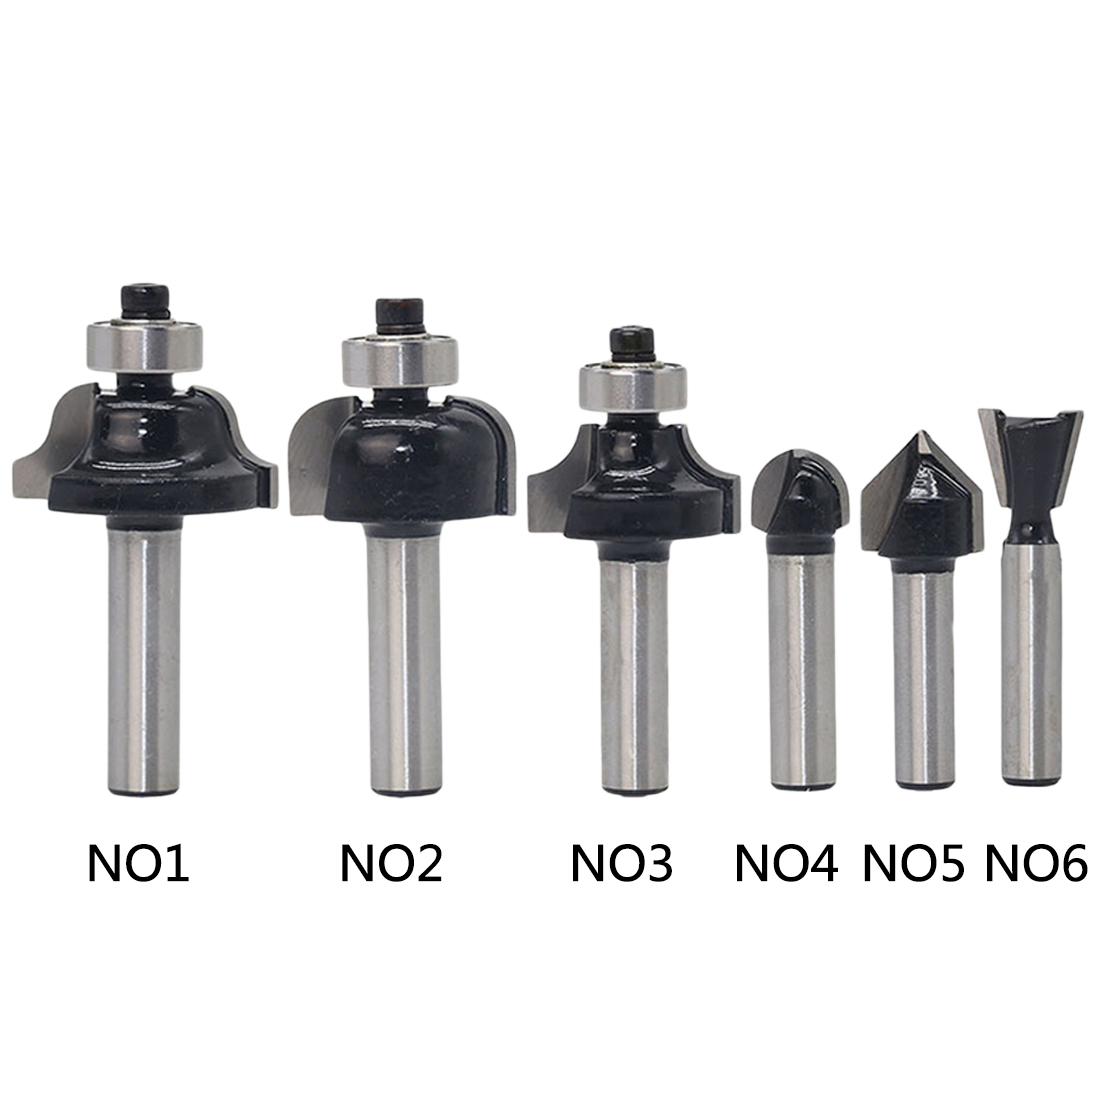 8mm Shank Wood Router Bit Straight End Mill Trimmer Cleaning Flush Trim Corner Round Cove Box Bits Tools Milling Cutter